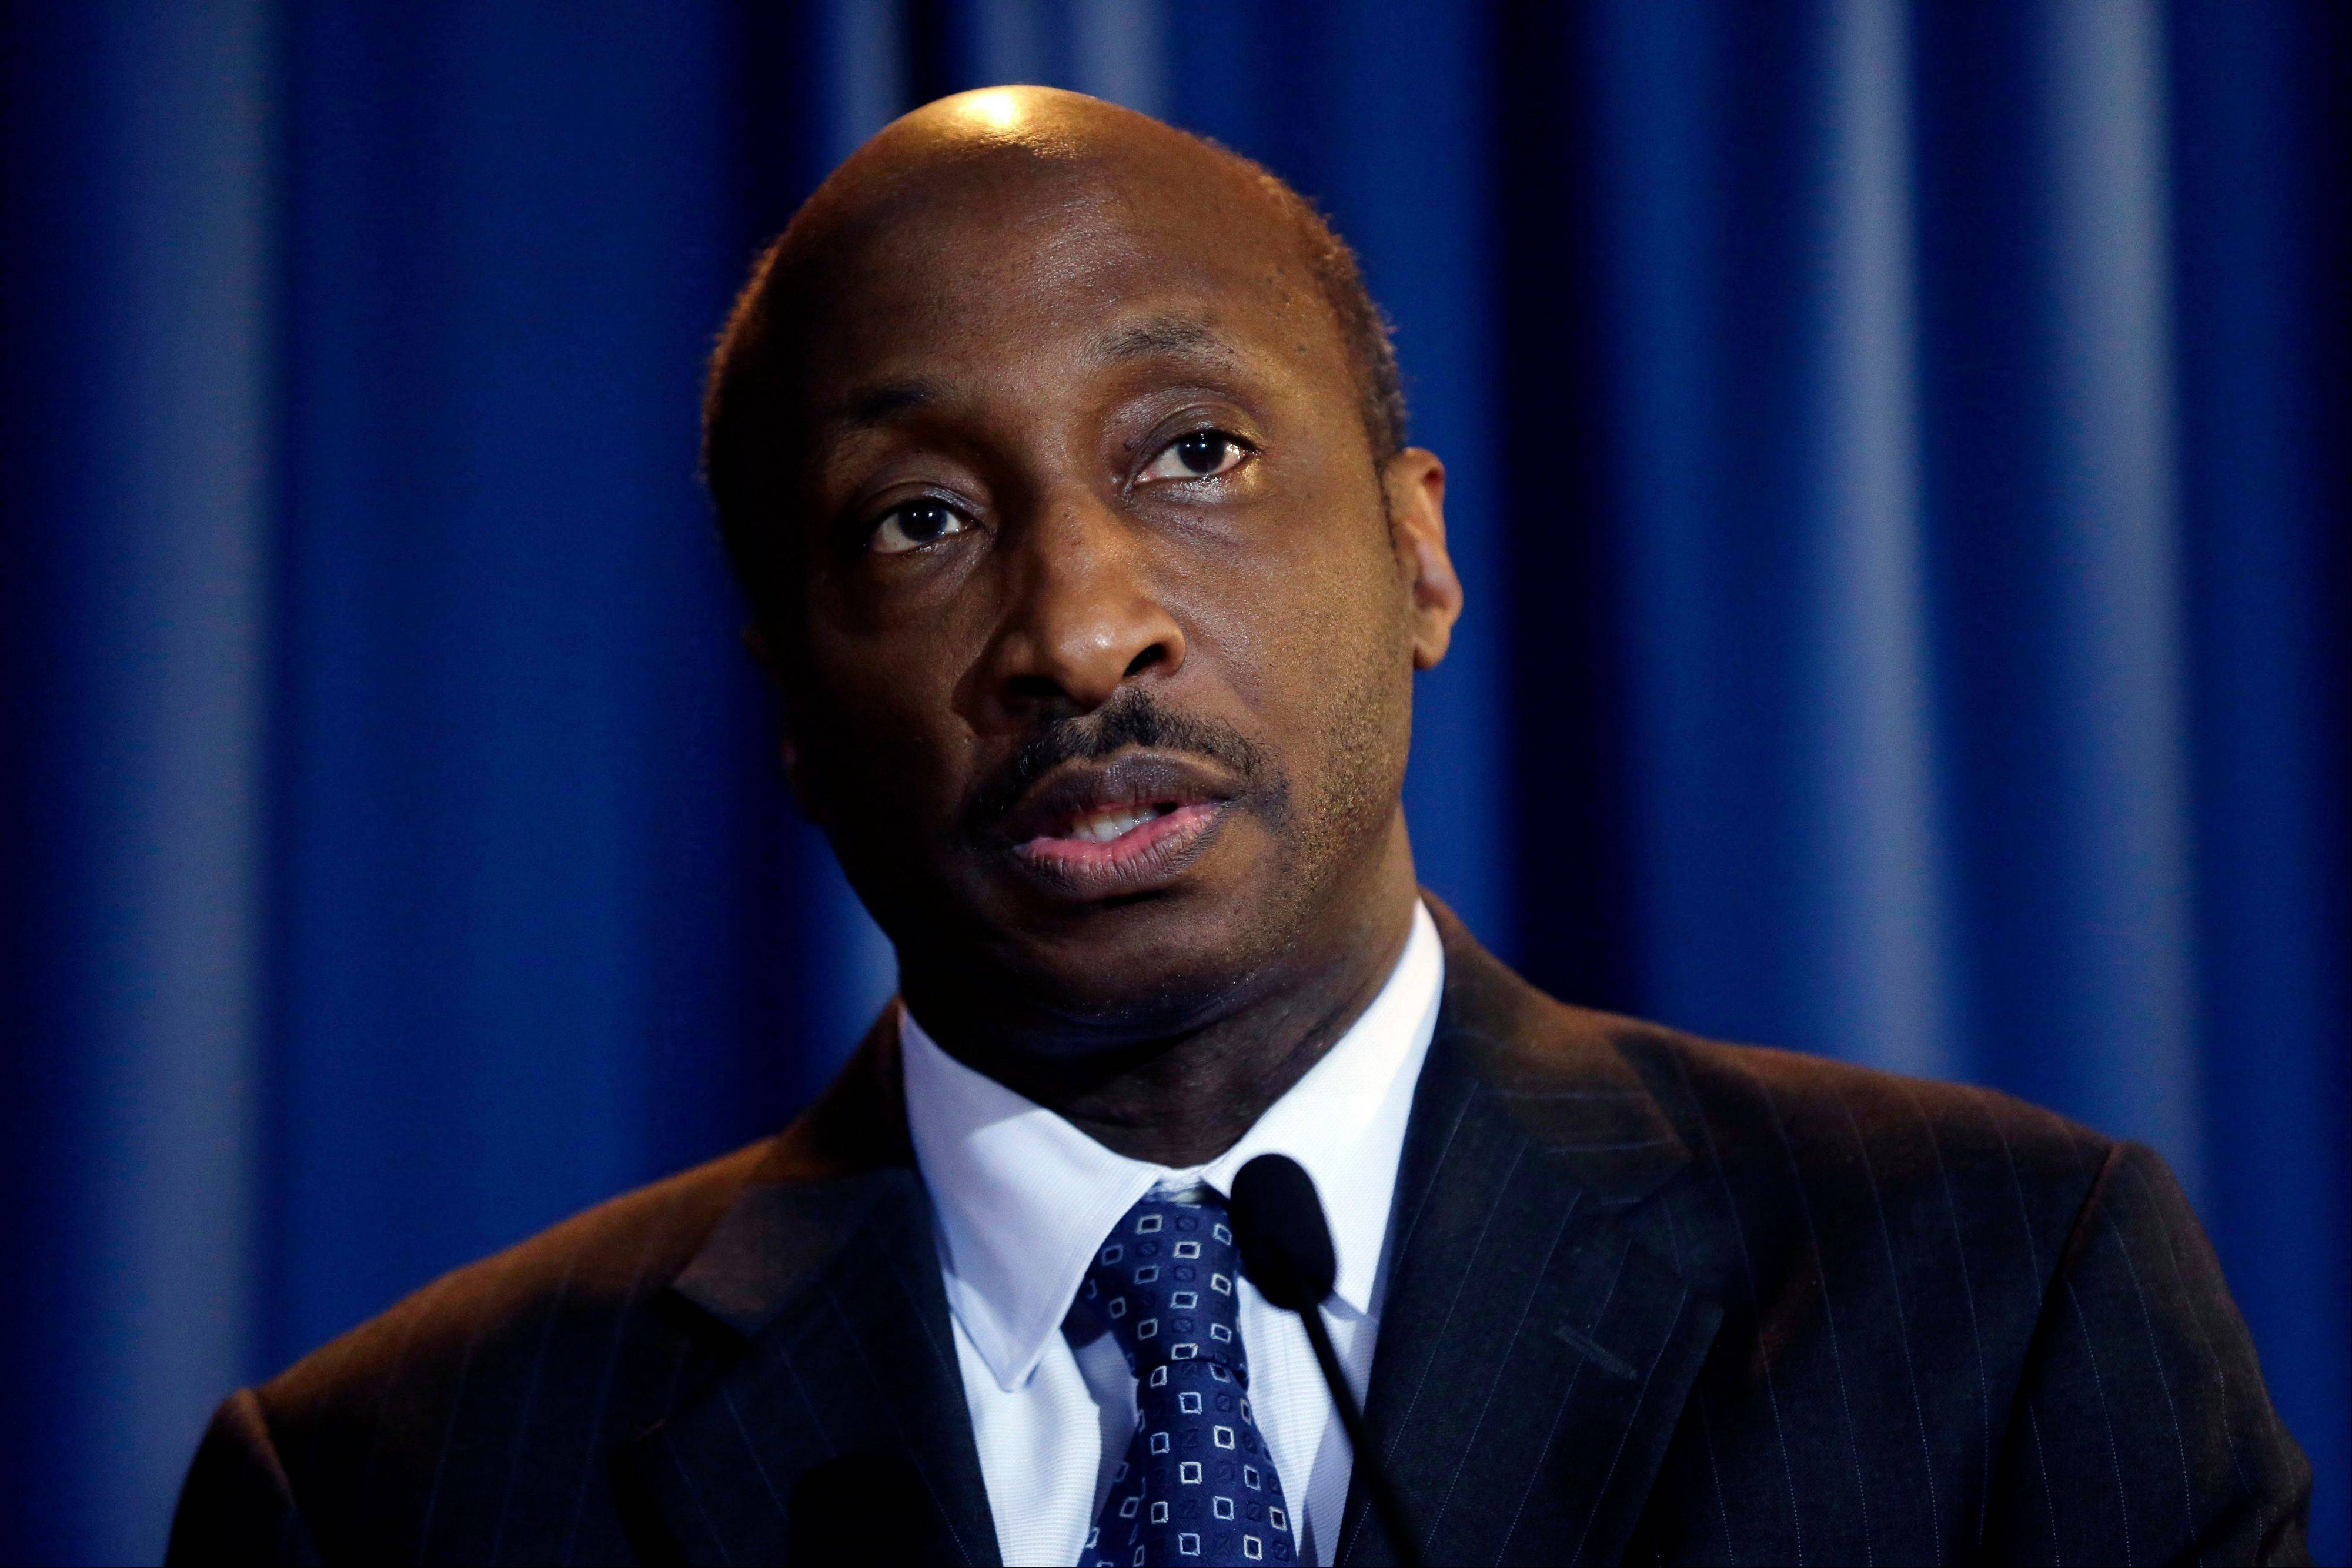 Merck CEO Kenneth Frazier is convinced nearly everyone, from patients to long-term investors, wants the world's third-largest drugmaker to take big risks. One of Merck's biggest gambles is the tens of millions it's pouring into an experimental treatment for a new type of Alzheimer's drug.